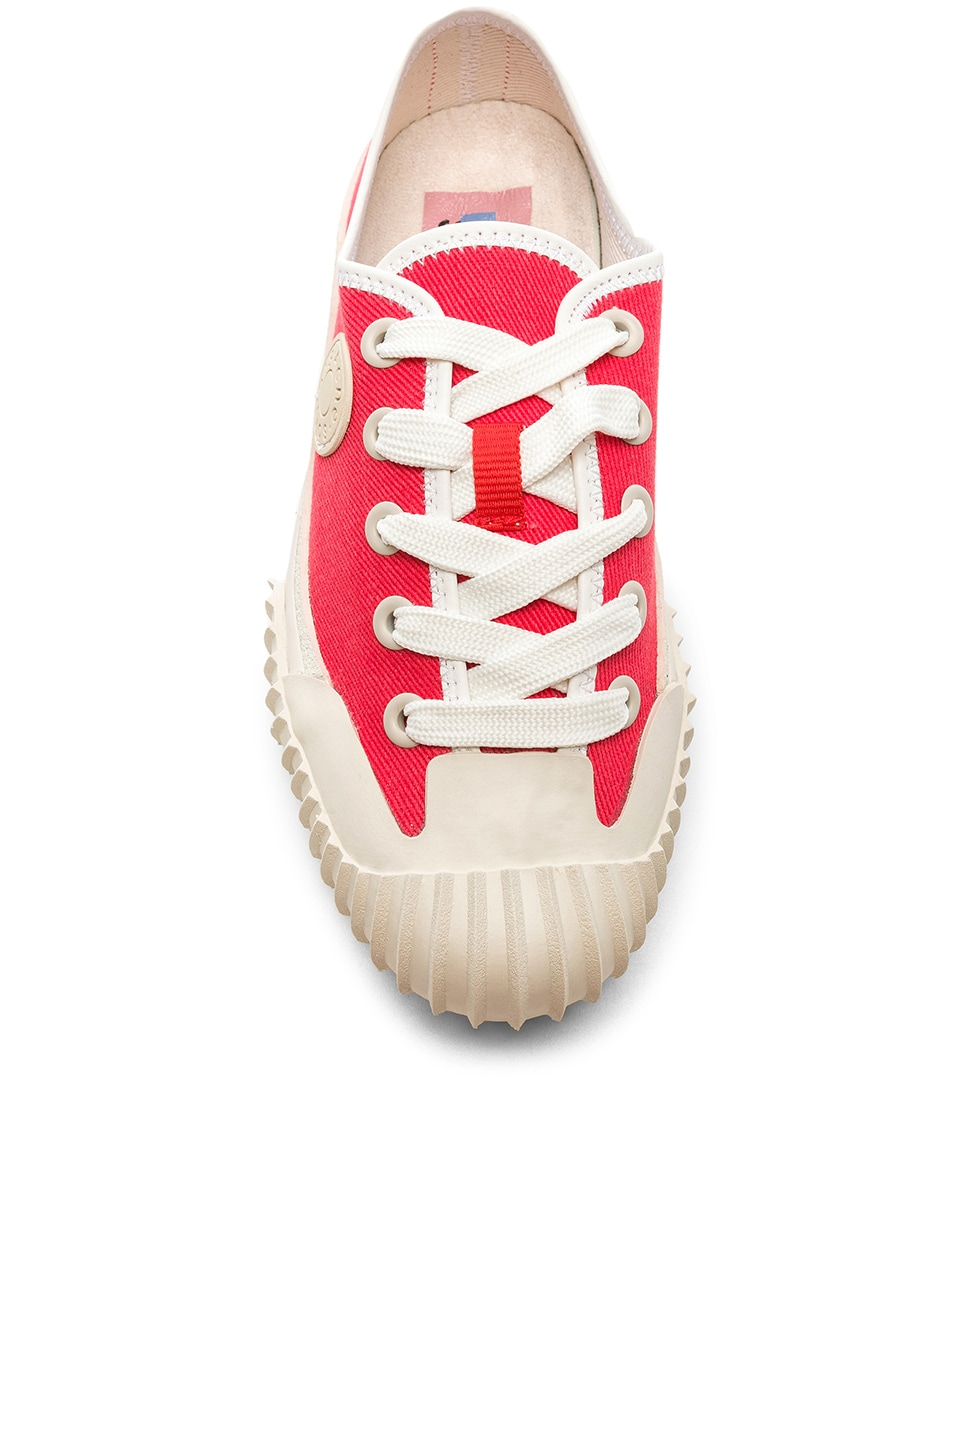 Image 4 of Acne Studios x Bla Konst Sneaker in Coral Red